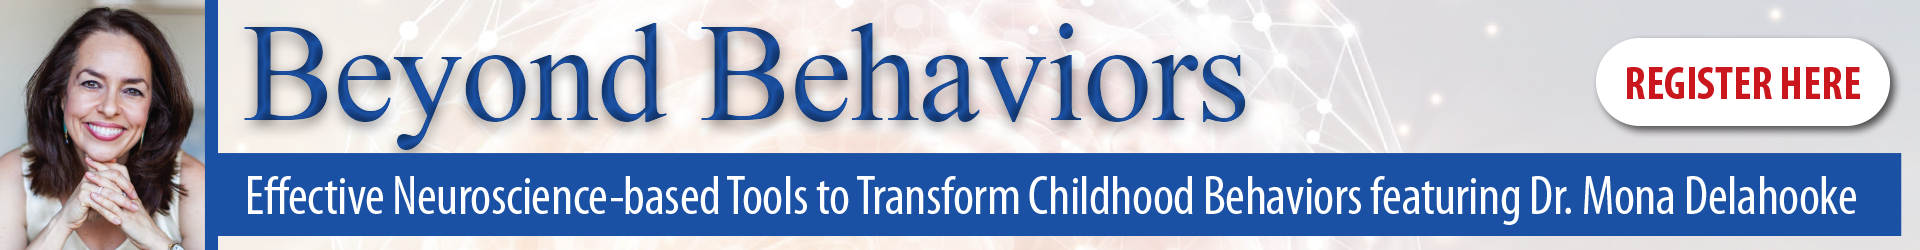 Beyond Behaviors: Effective Neuroscience-based Tools to Transform Childhood Behaviors featuring Dr. Mona Delahooke